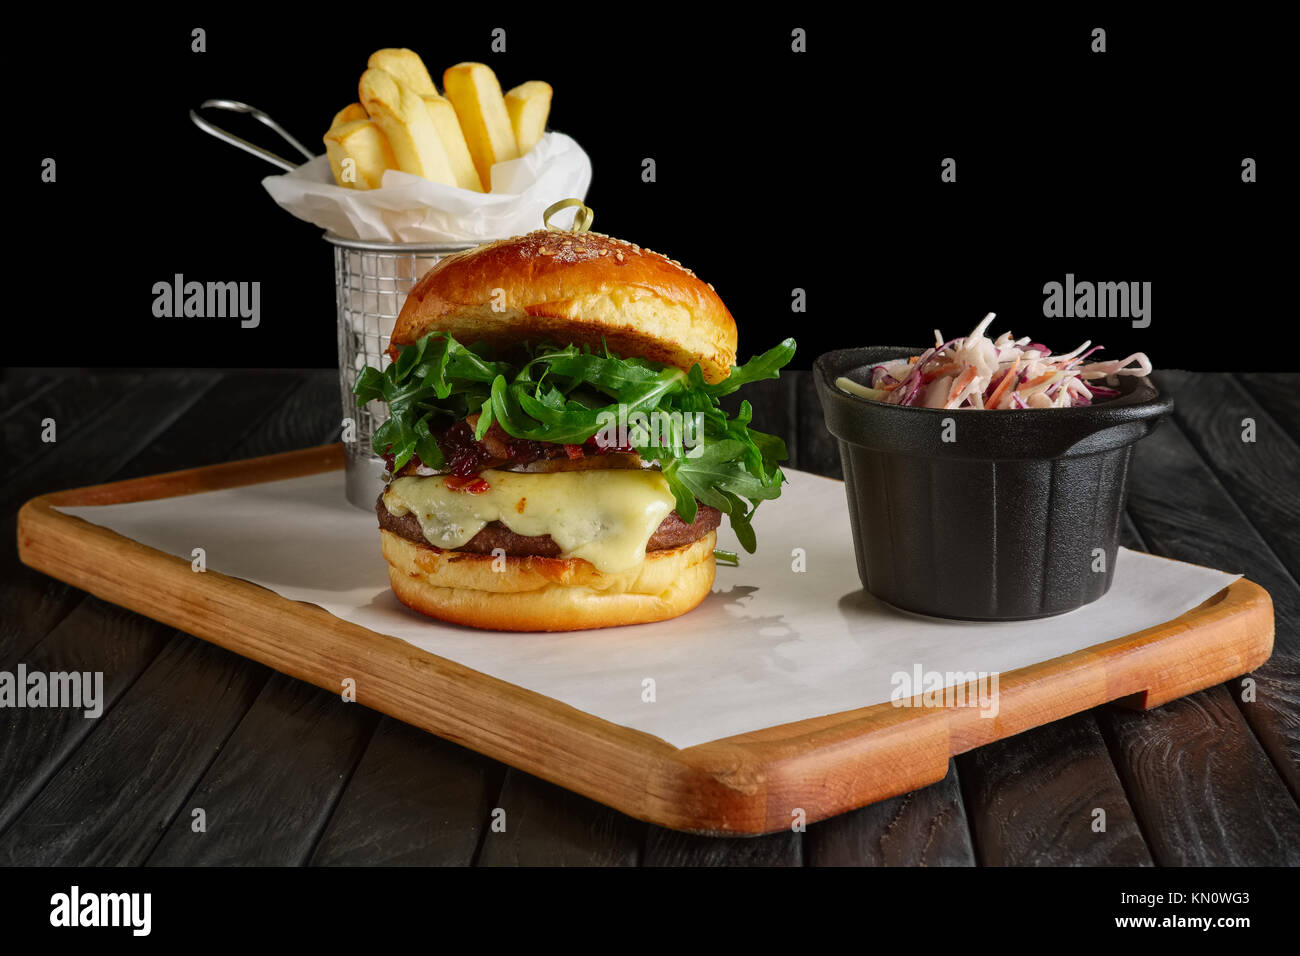 Juicy beef burger with lingonberry sauce, melted cheese, arugula served with fried potato and red cabbage Stock Photo